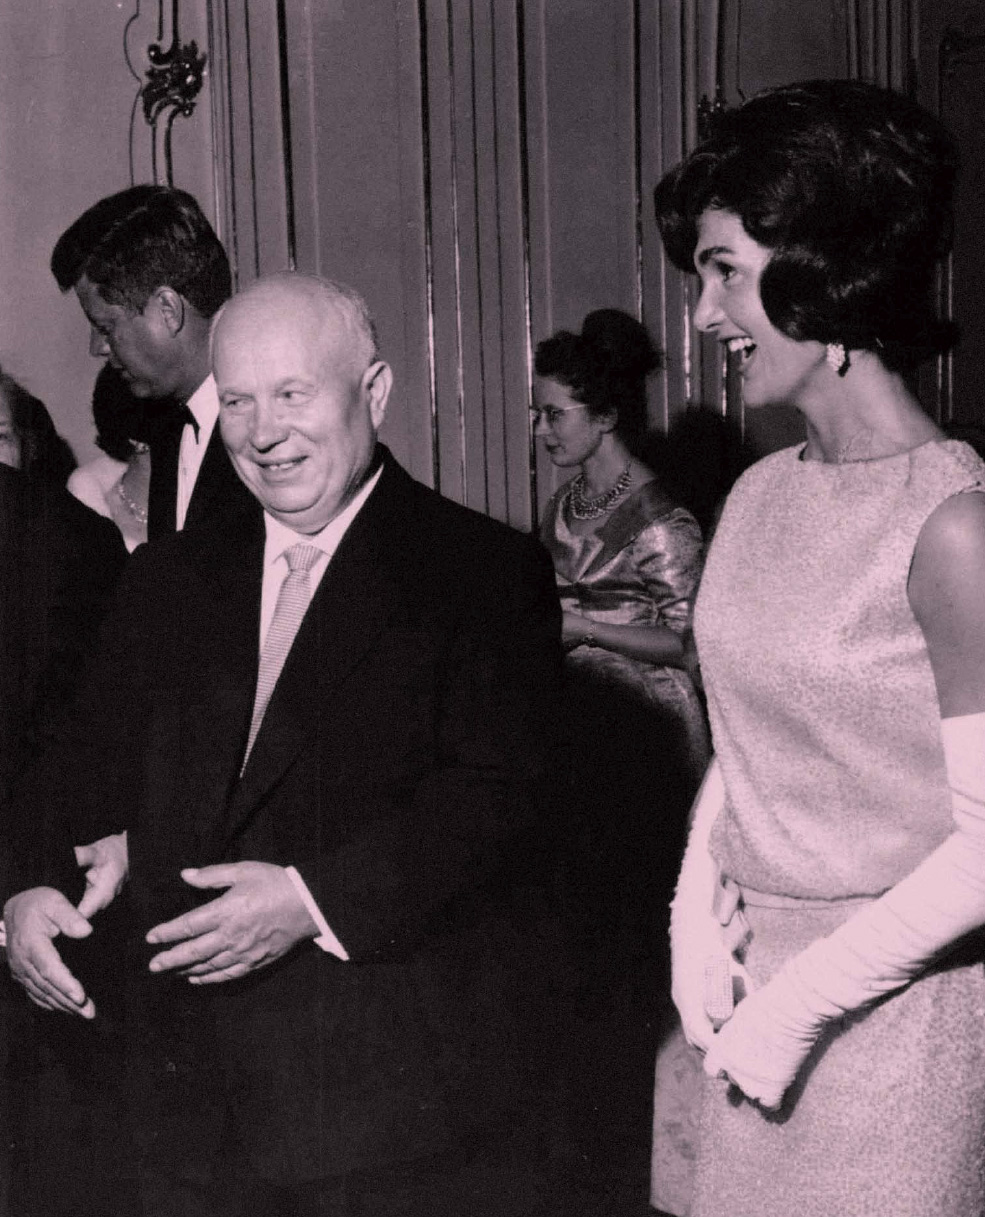 During the gala dinner at Schönbrunn Palace, Chairman Nikita Khrushchev chatted with American First Lady Jackie Kennedy, with President Kennedy in the background (on left).